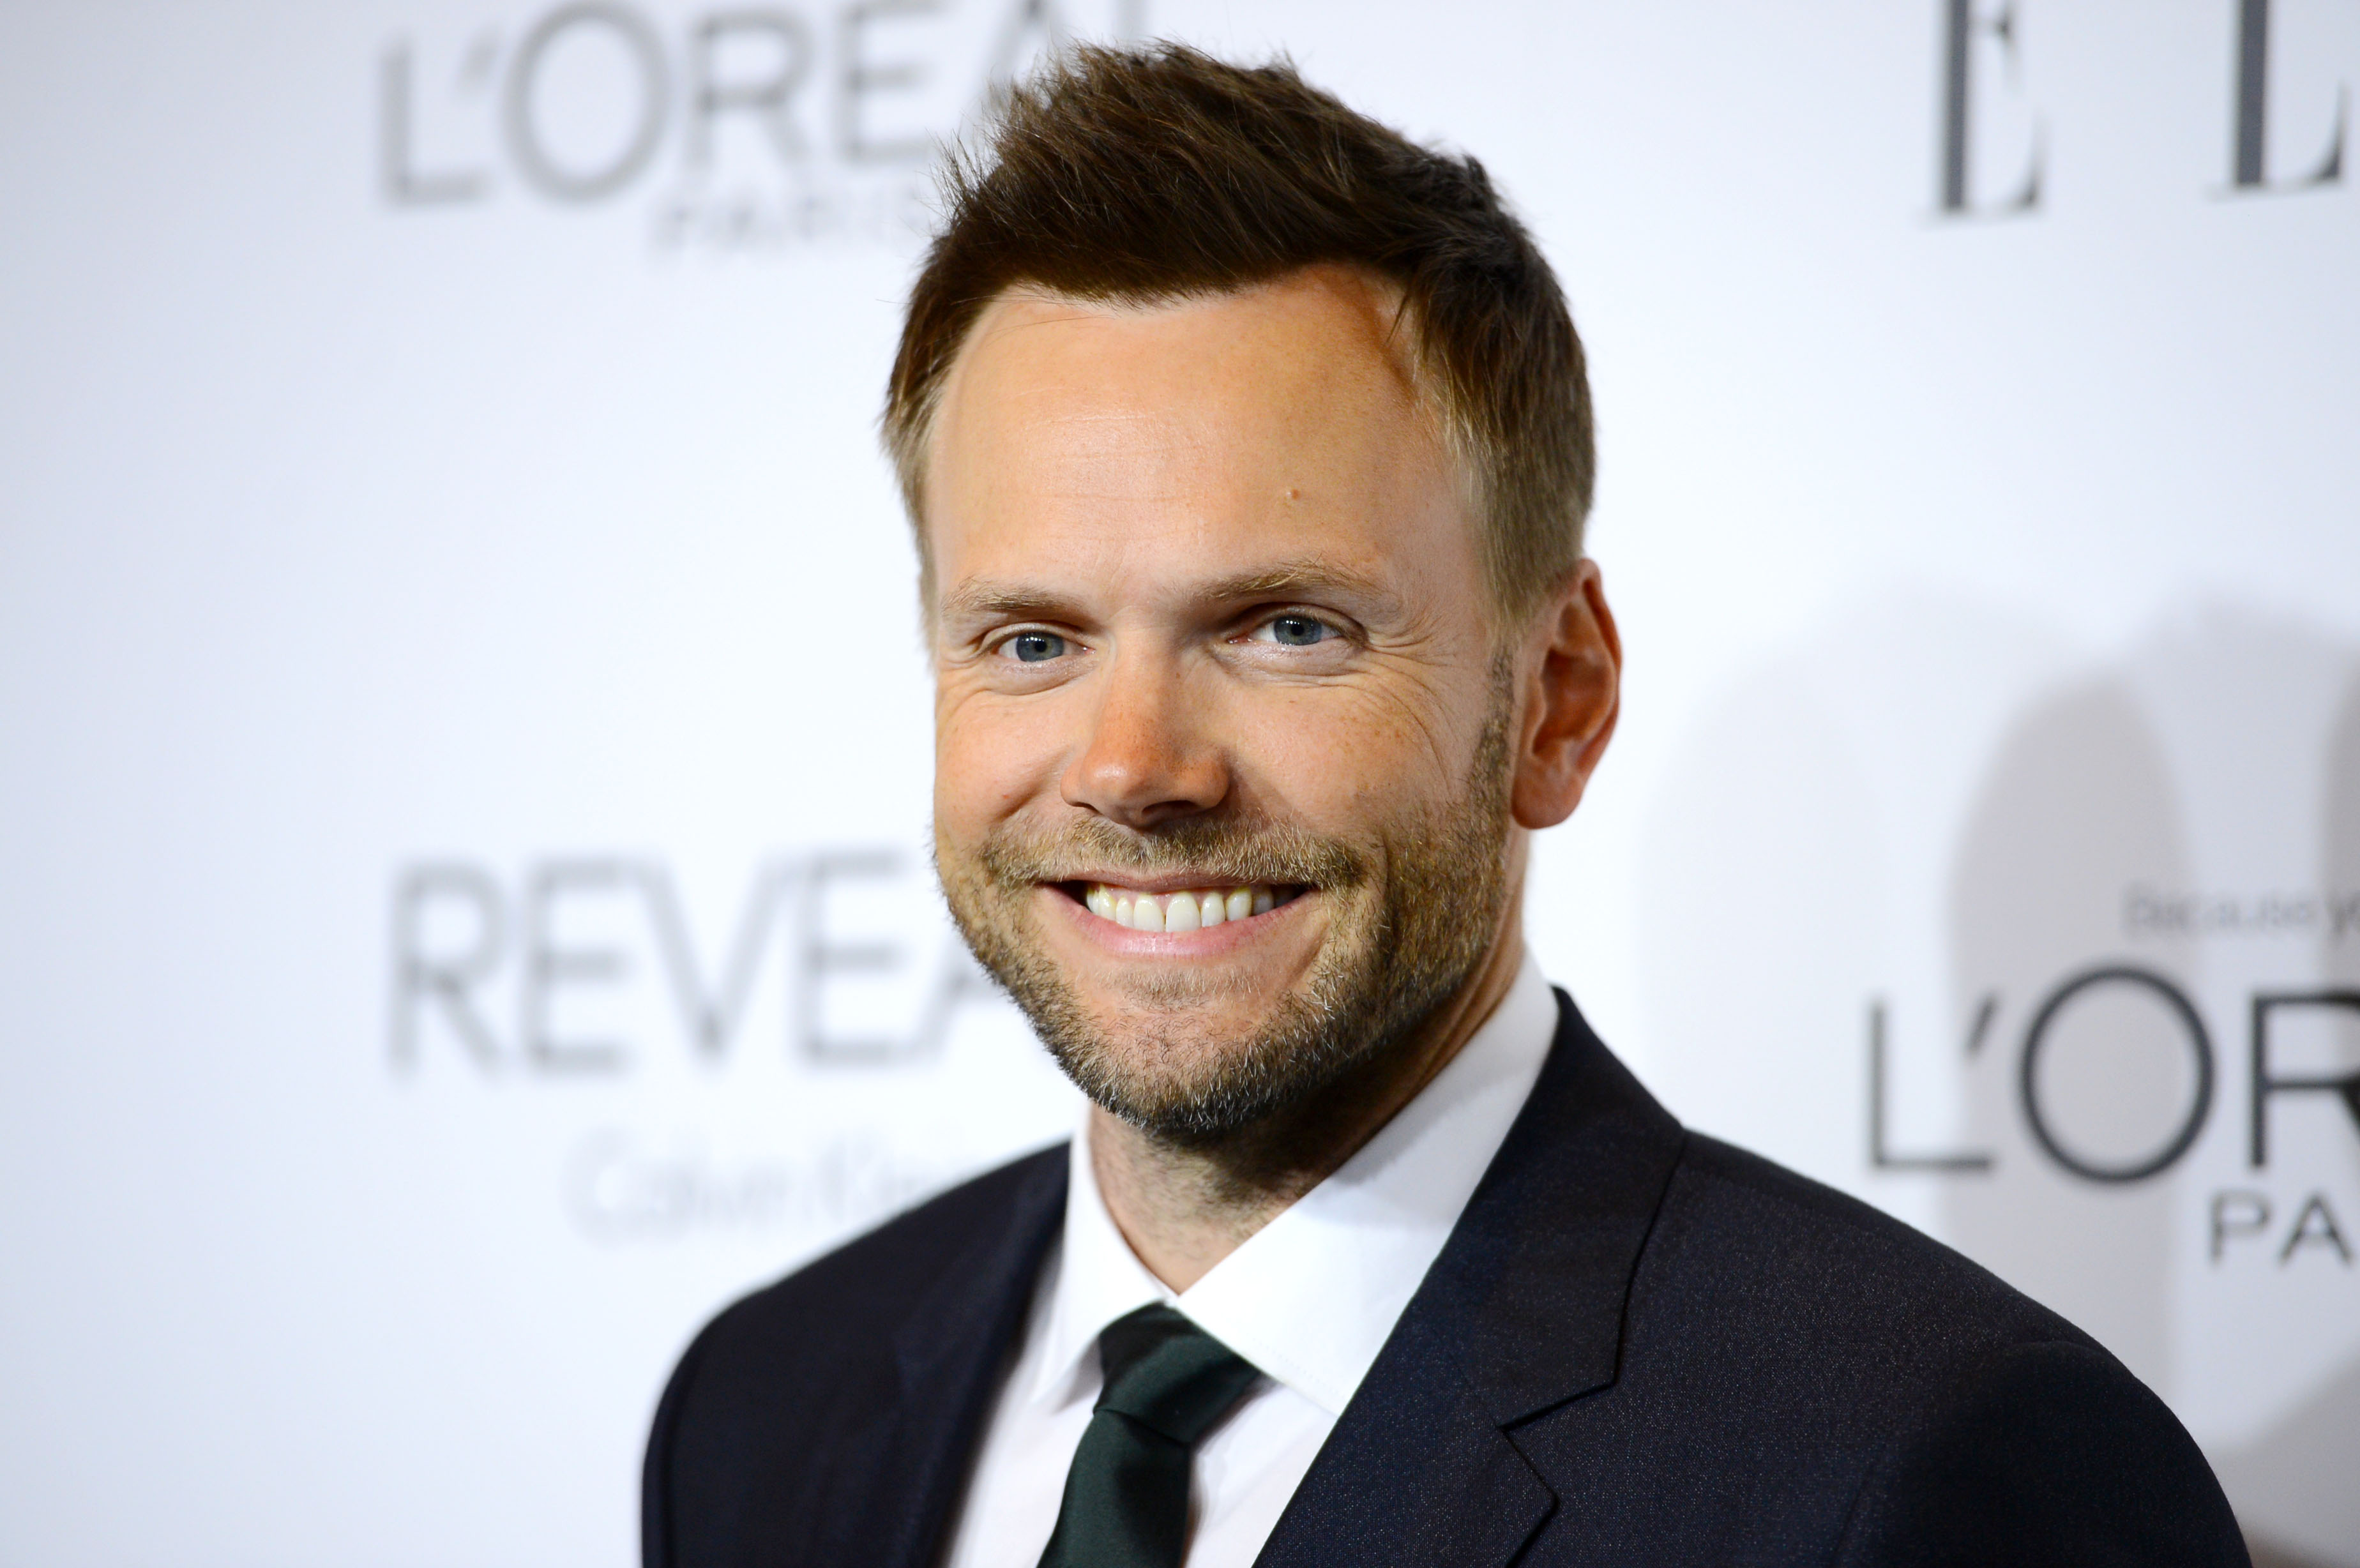 Joel McHale to host annual ESPY awards